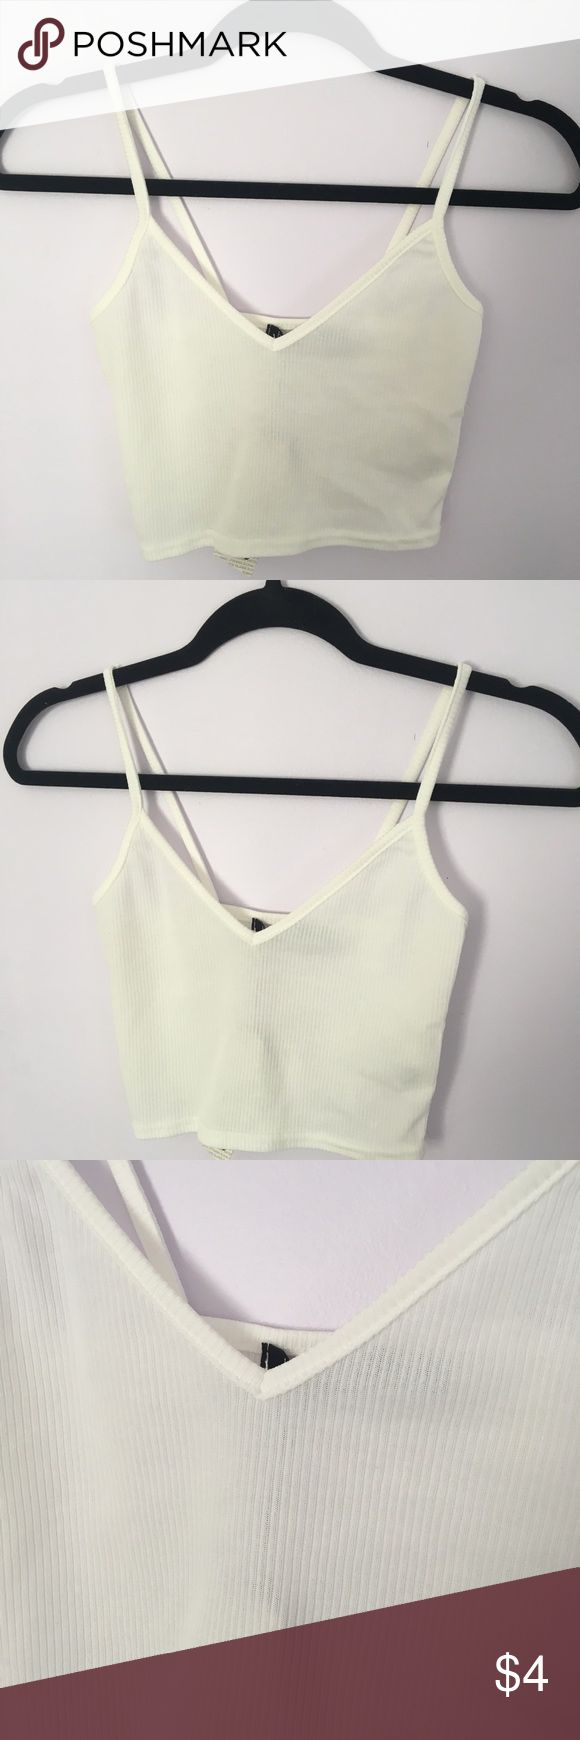 Ribbed cropped tank This is a ribbed cropped white tank! It is a lil see through but u can prob style it with a cute bra Leyte underneath! Never worn! Boohoo Tops Tank Tops